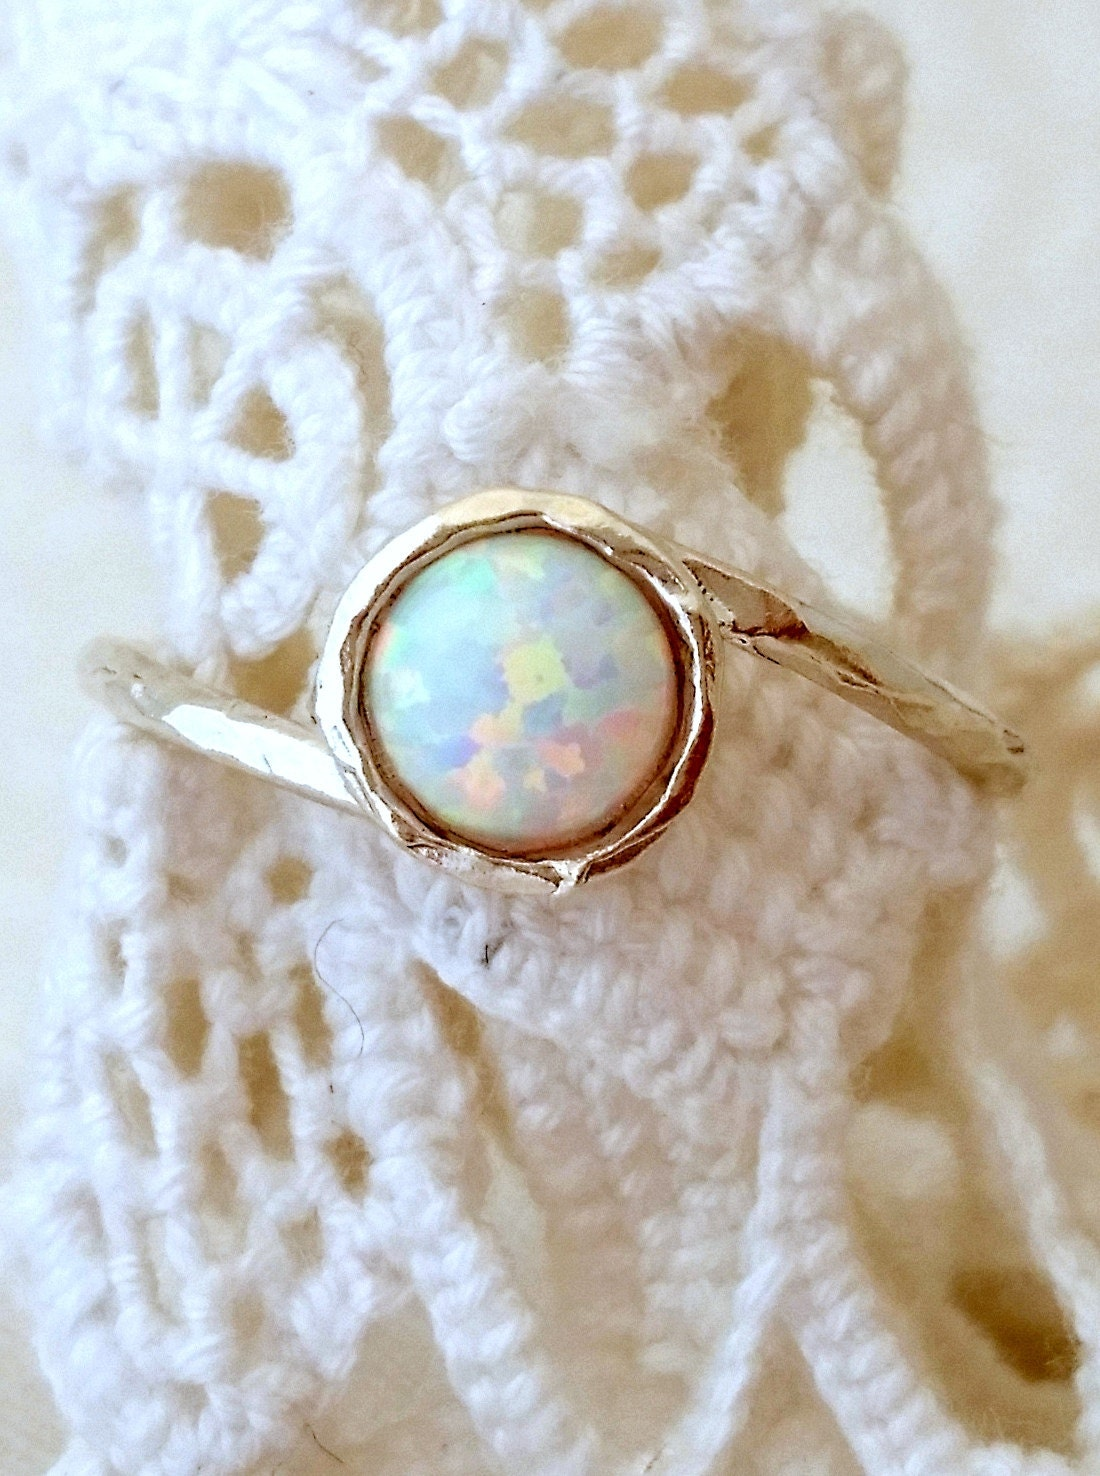 Opal Ring White Opal Ring Silver Opal Ring Gemstone Ring